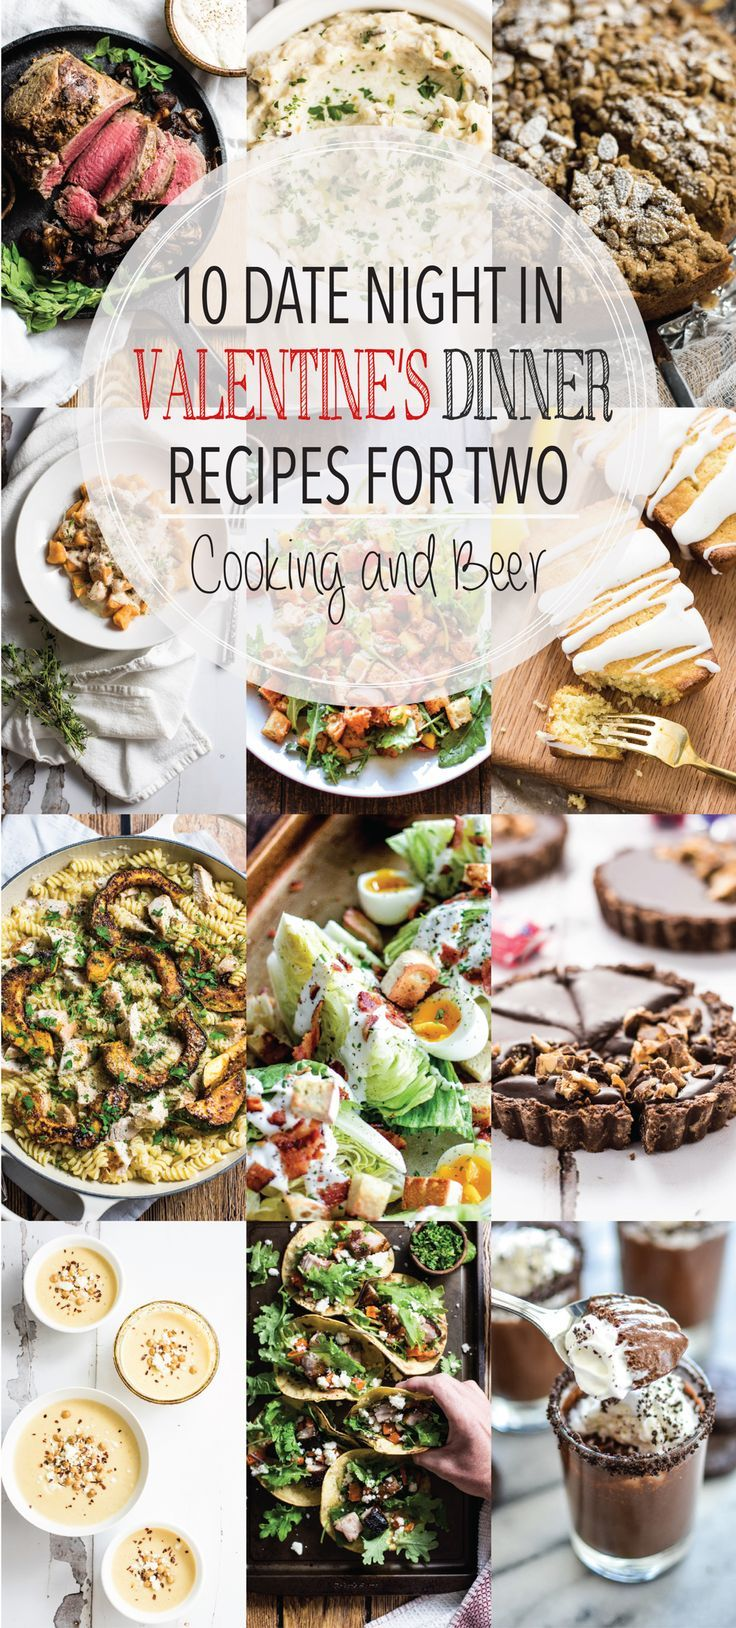 10 date night in valentines dinner recipes - Valentine Day Meals To Cook At Home